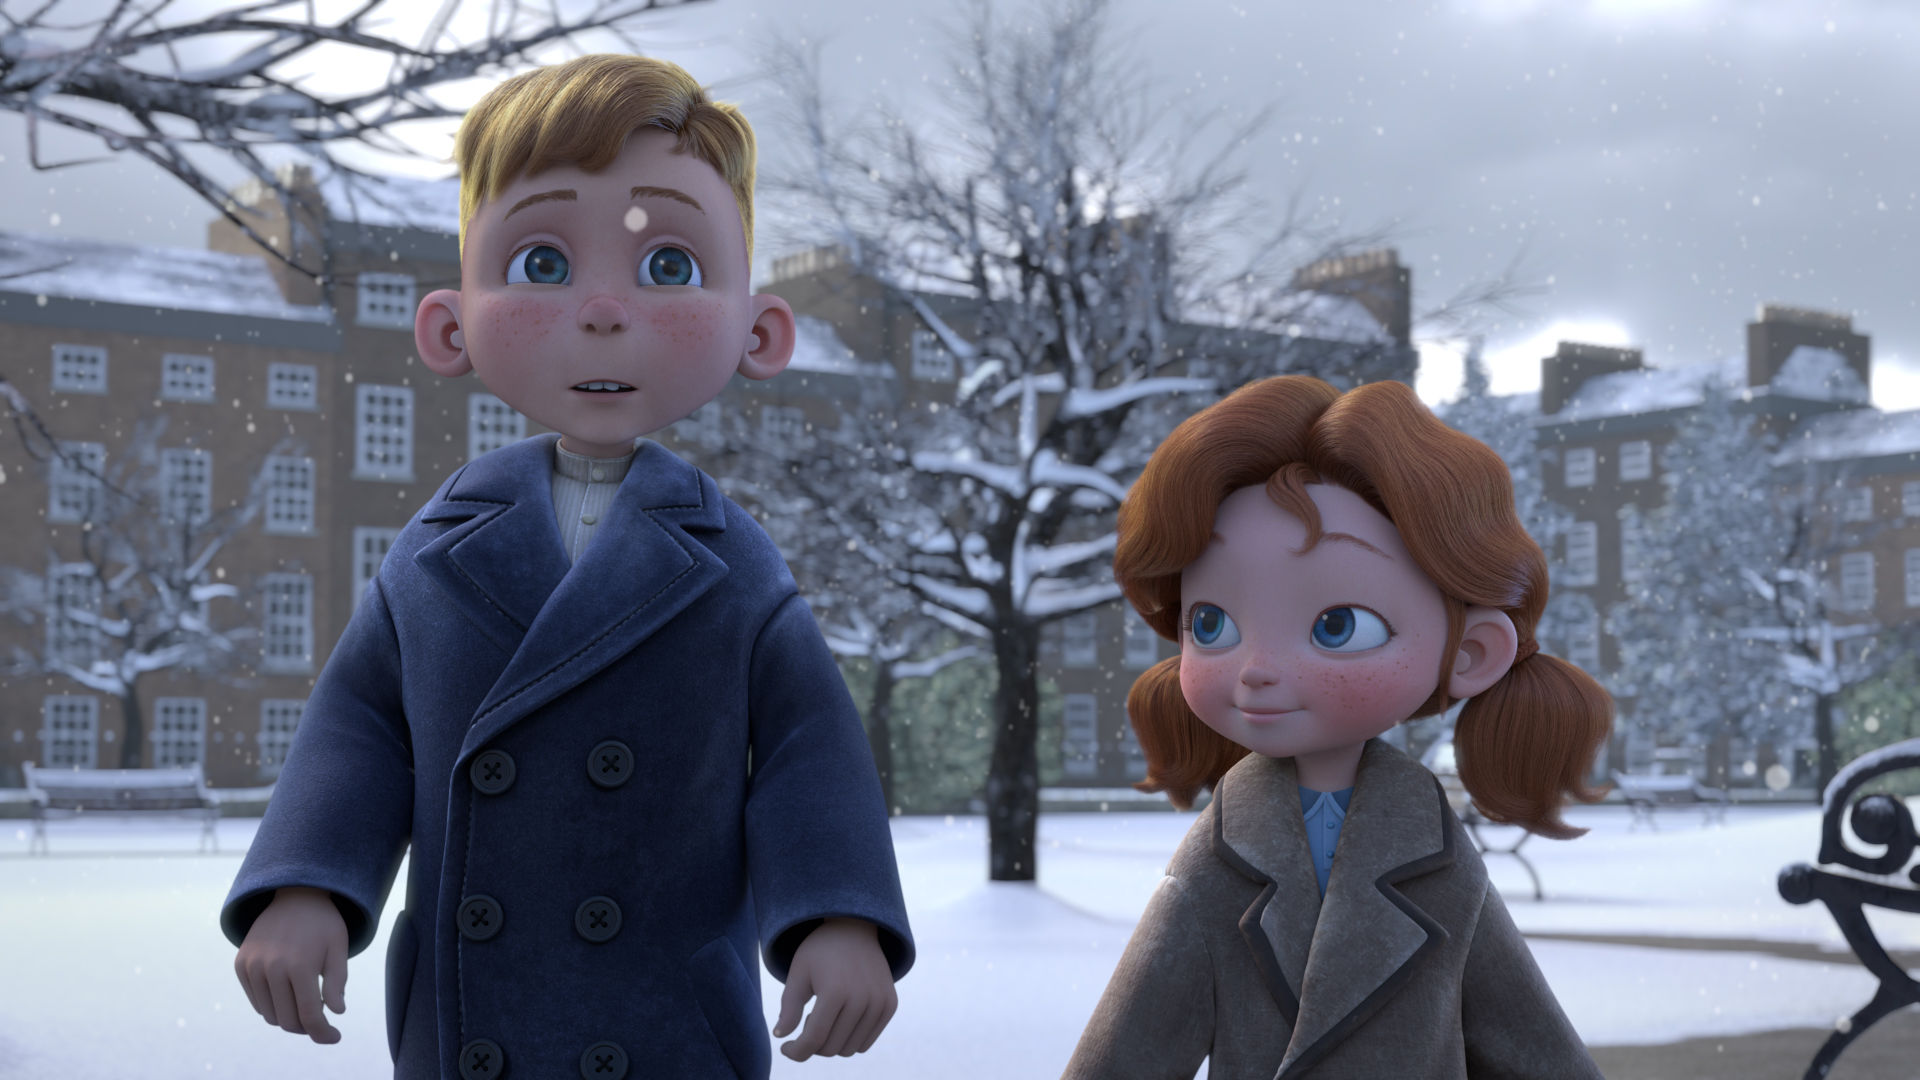 Netflix 2020 holiday slate includes The Princess Switch sequel, The Christmas Chronicles 2 & more 22